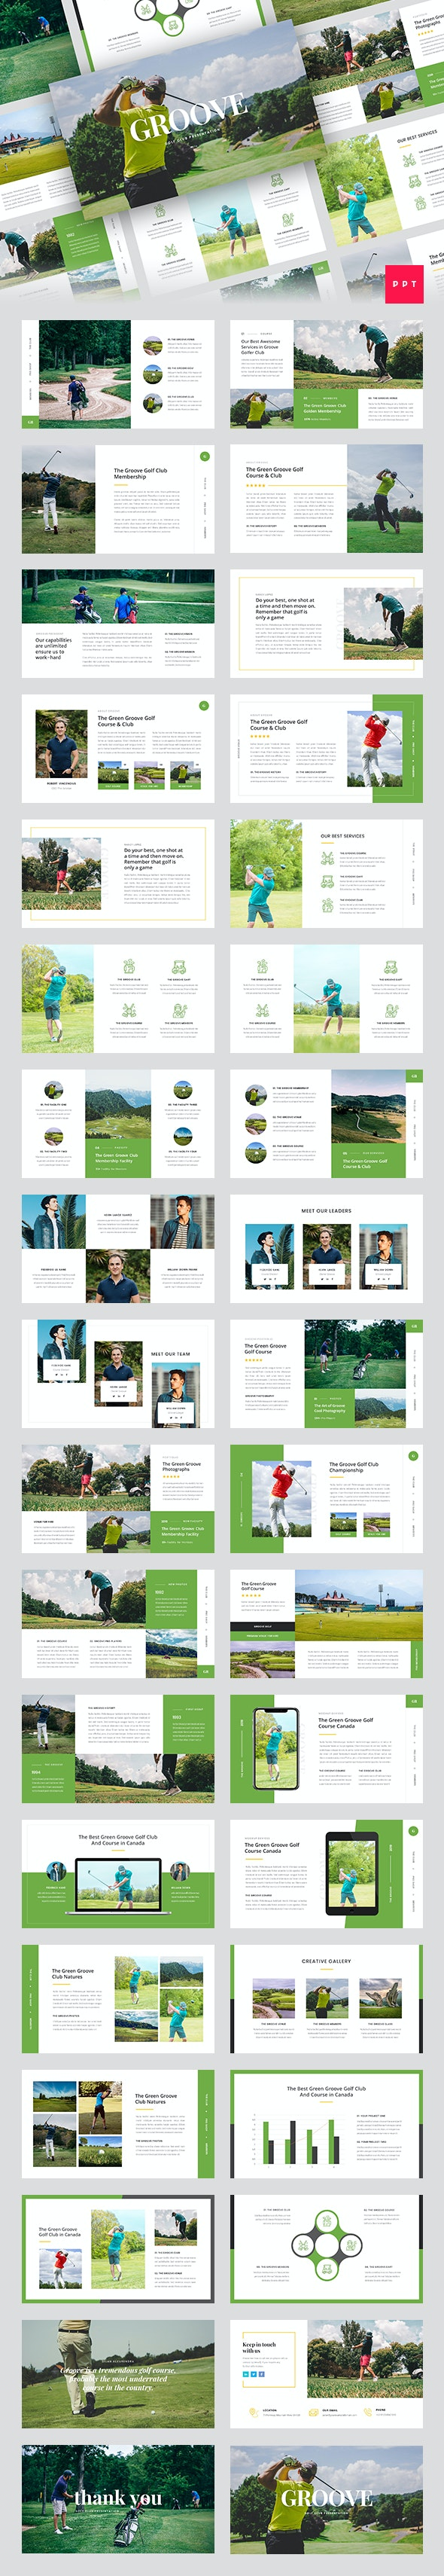 Groove - Golf Club PowerPoint Template - Business PowerPoint Templates